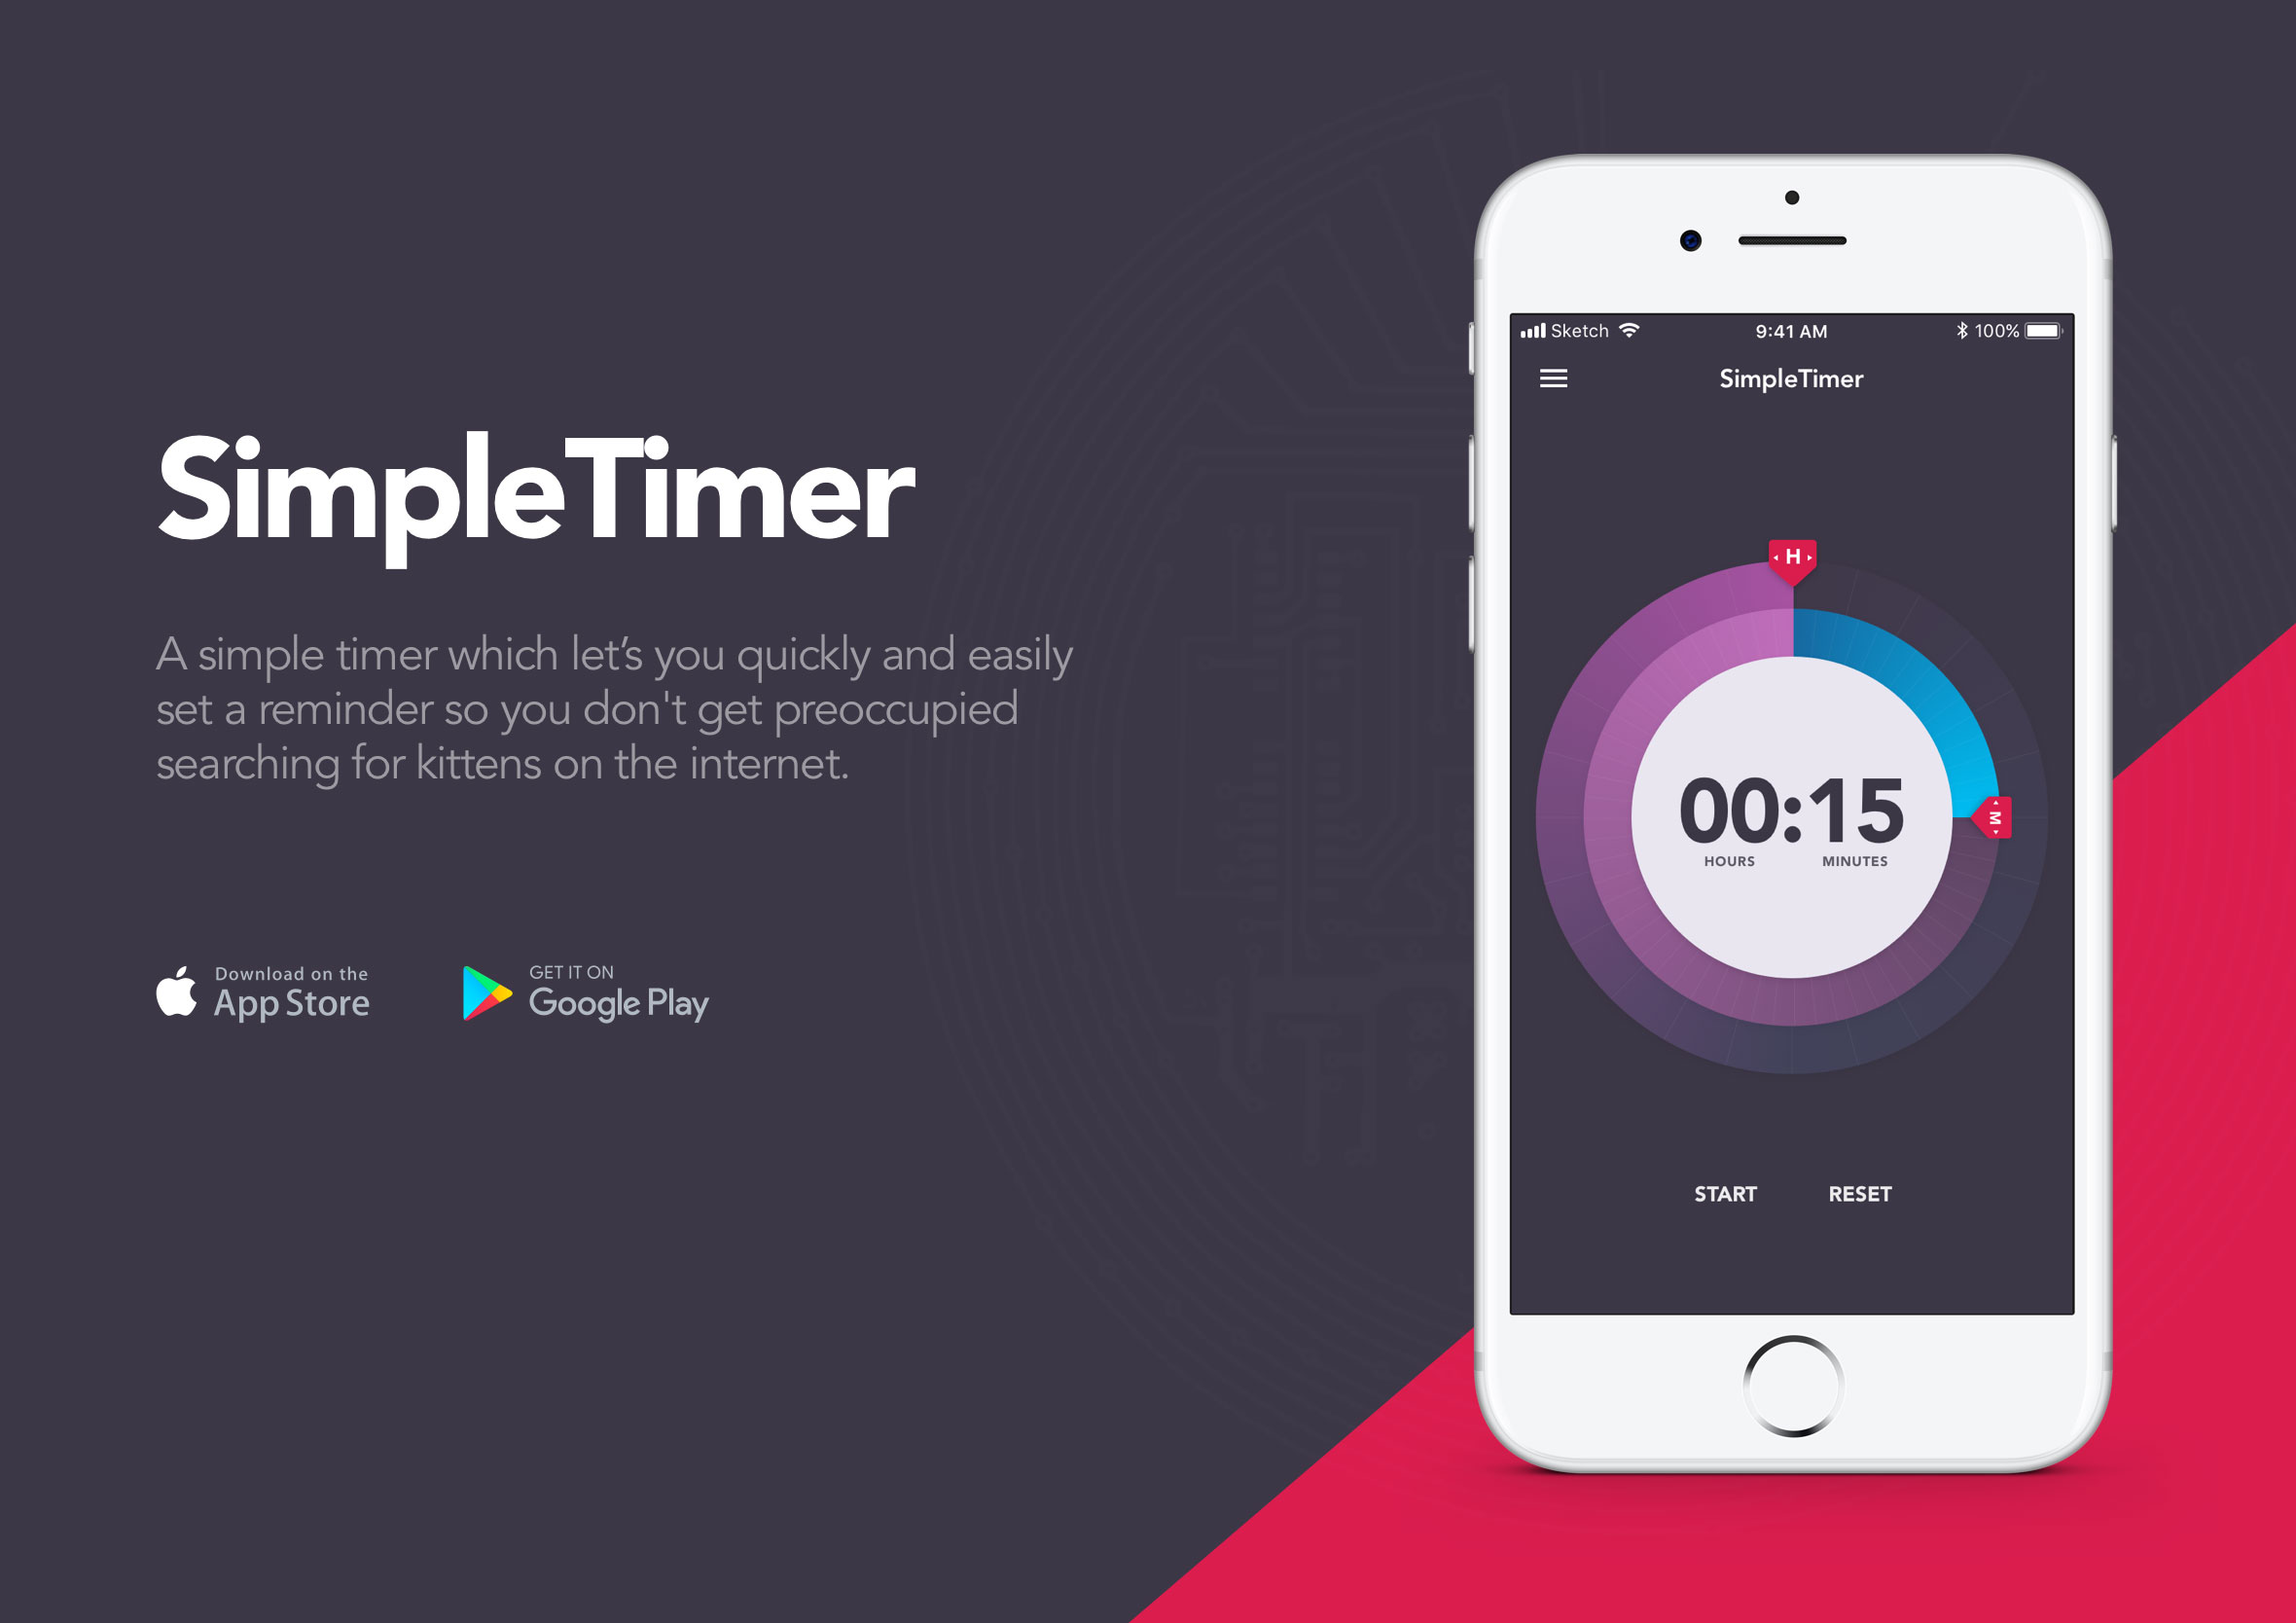 SimpleTimer iPhone app landing page